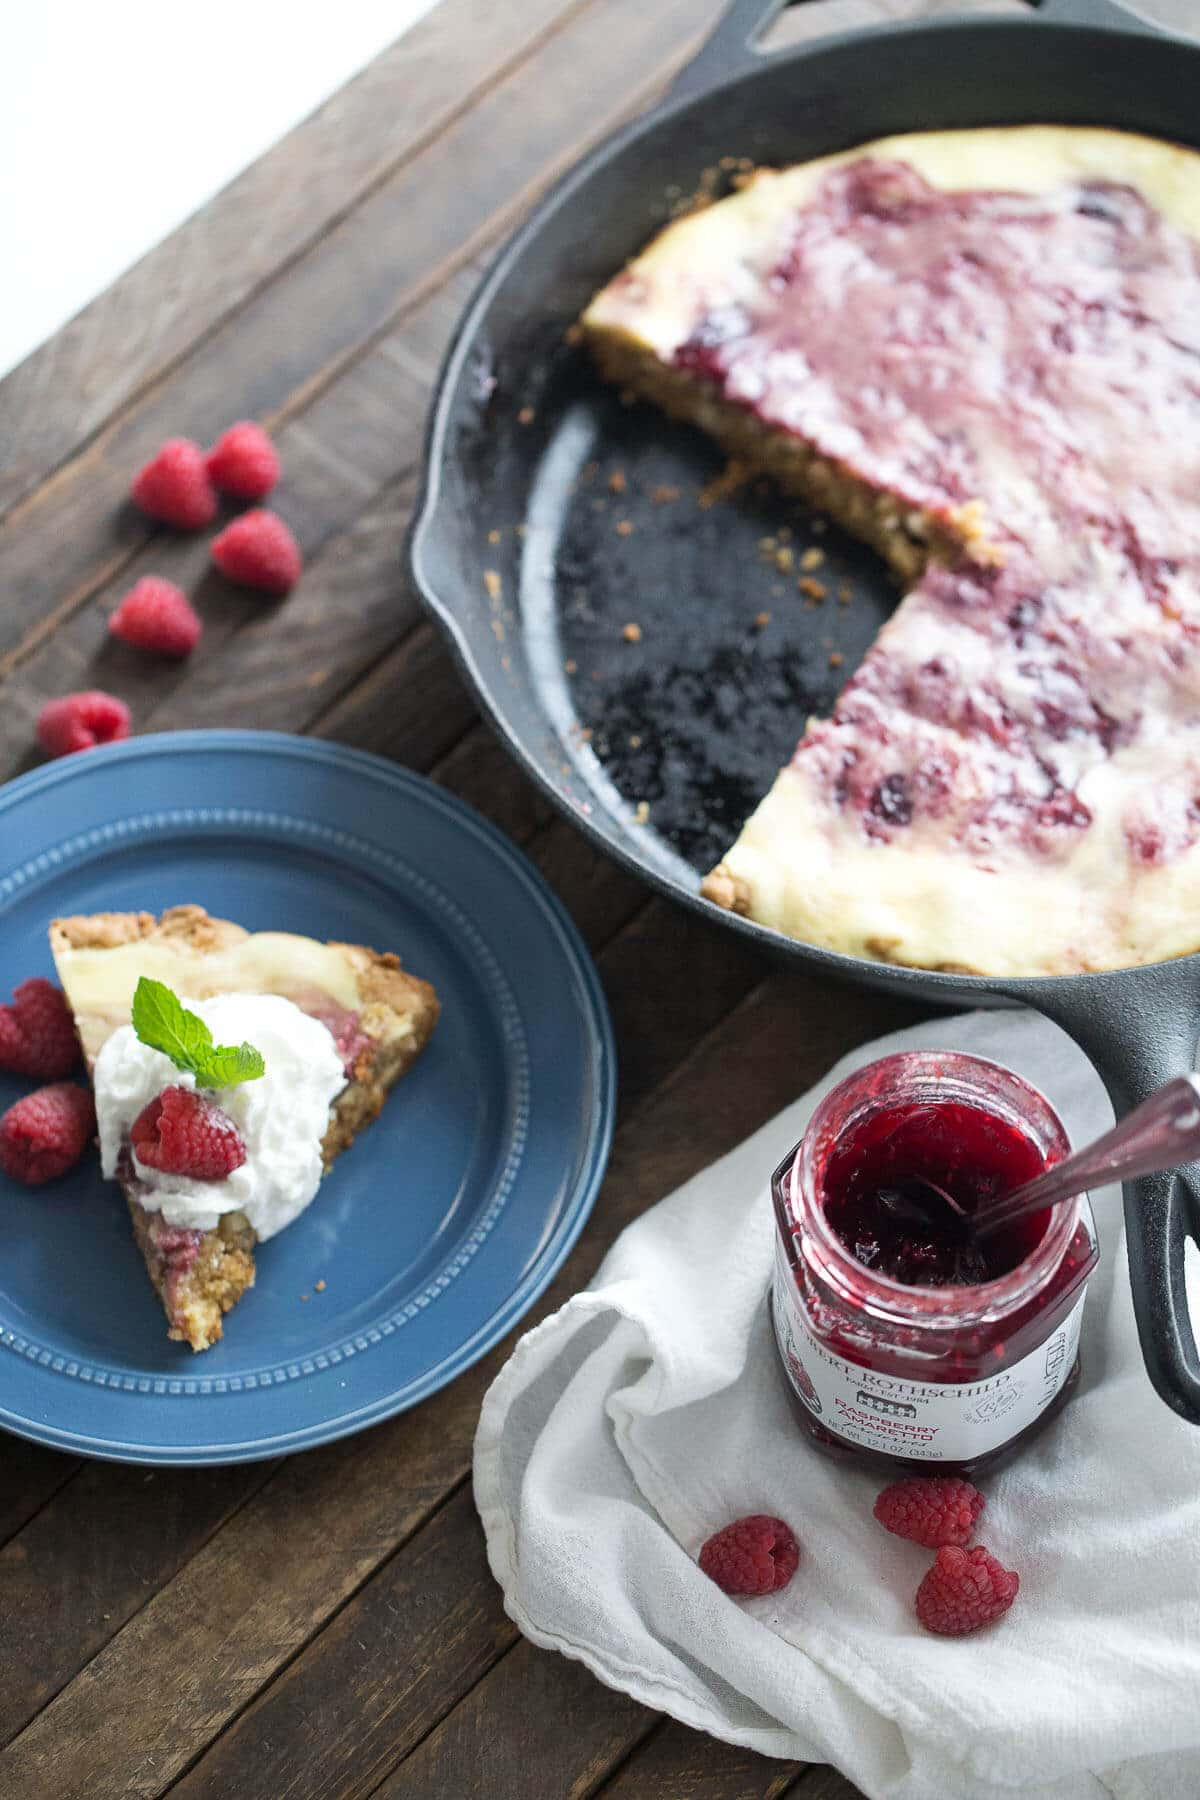 Love cheesecake? This raspberry amaretto cheesecake blondie is for you! The cheesecake layer is creamy and smooth and the blondie is soft and sweet! Such a; great combo!